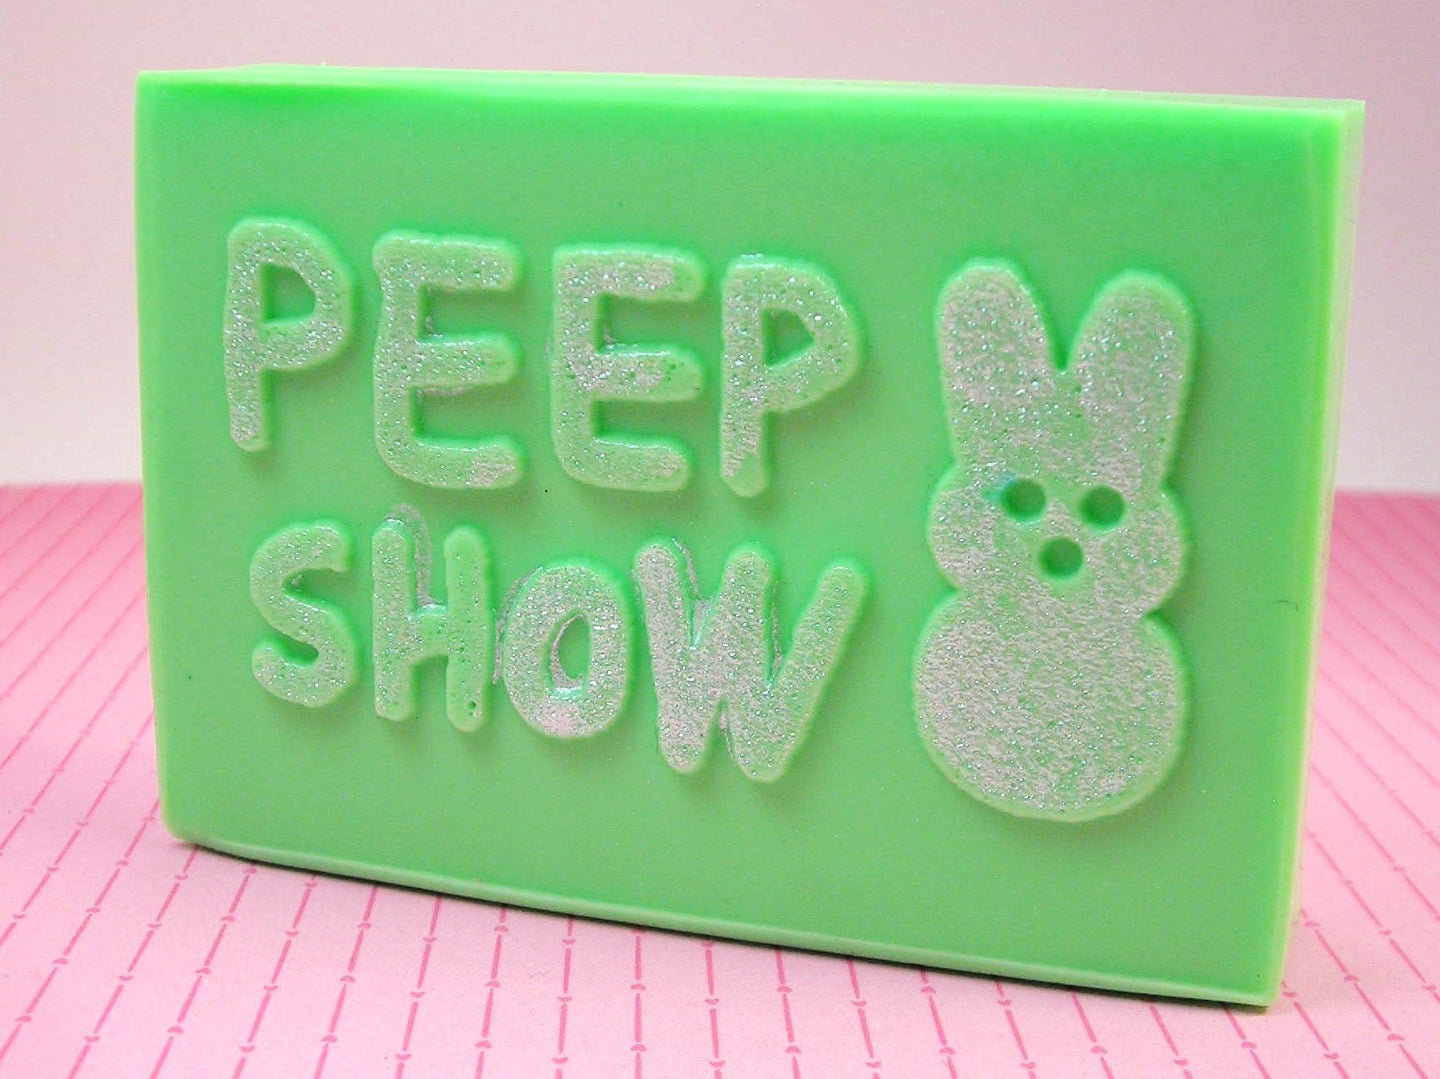 PEEP SHOW - Peeps Soap Bar (Chocolate Scented) - Purple